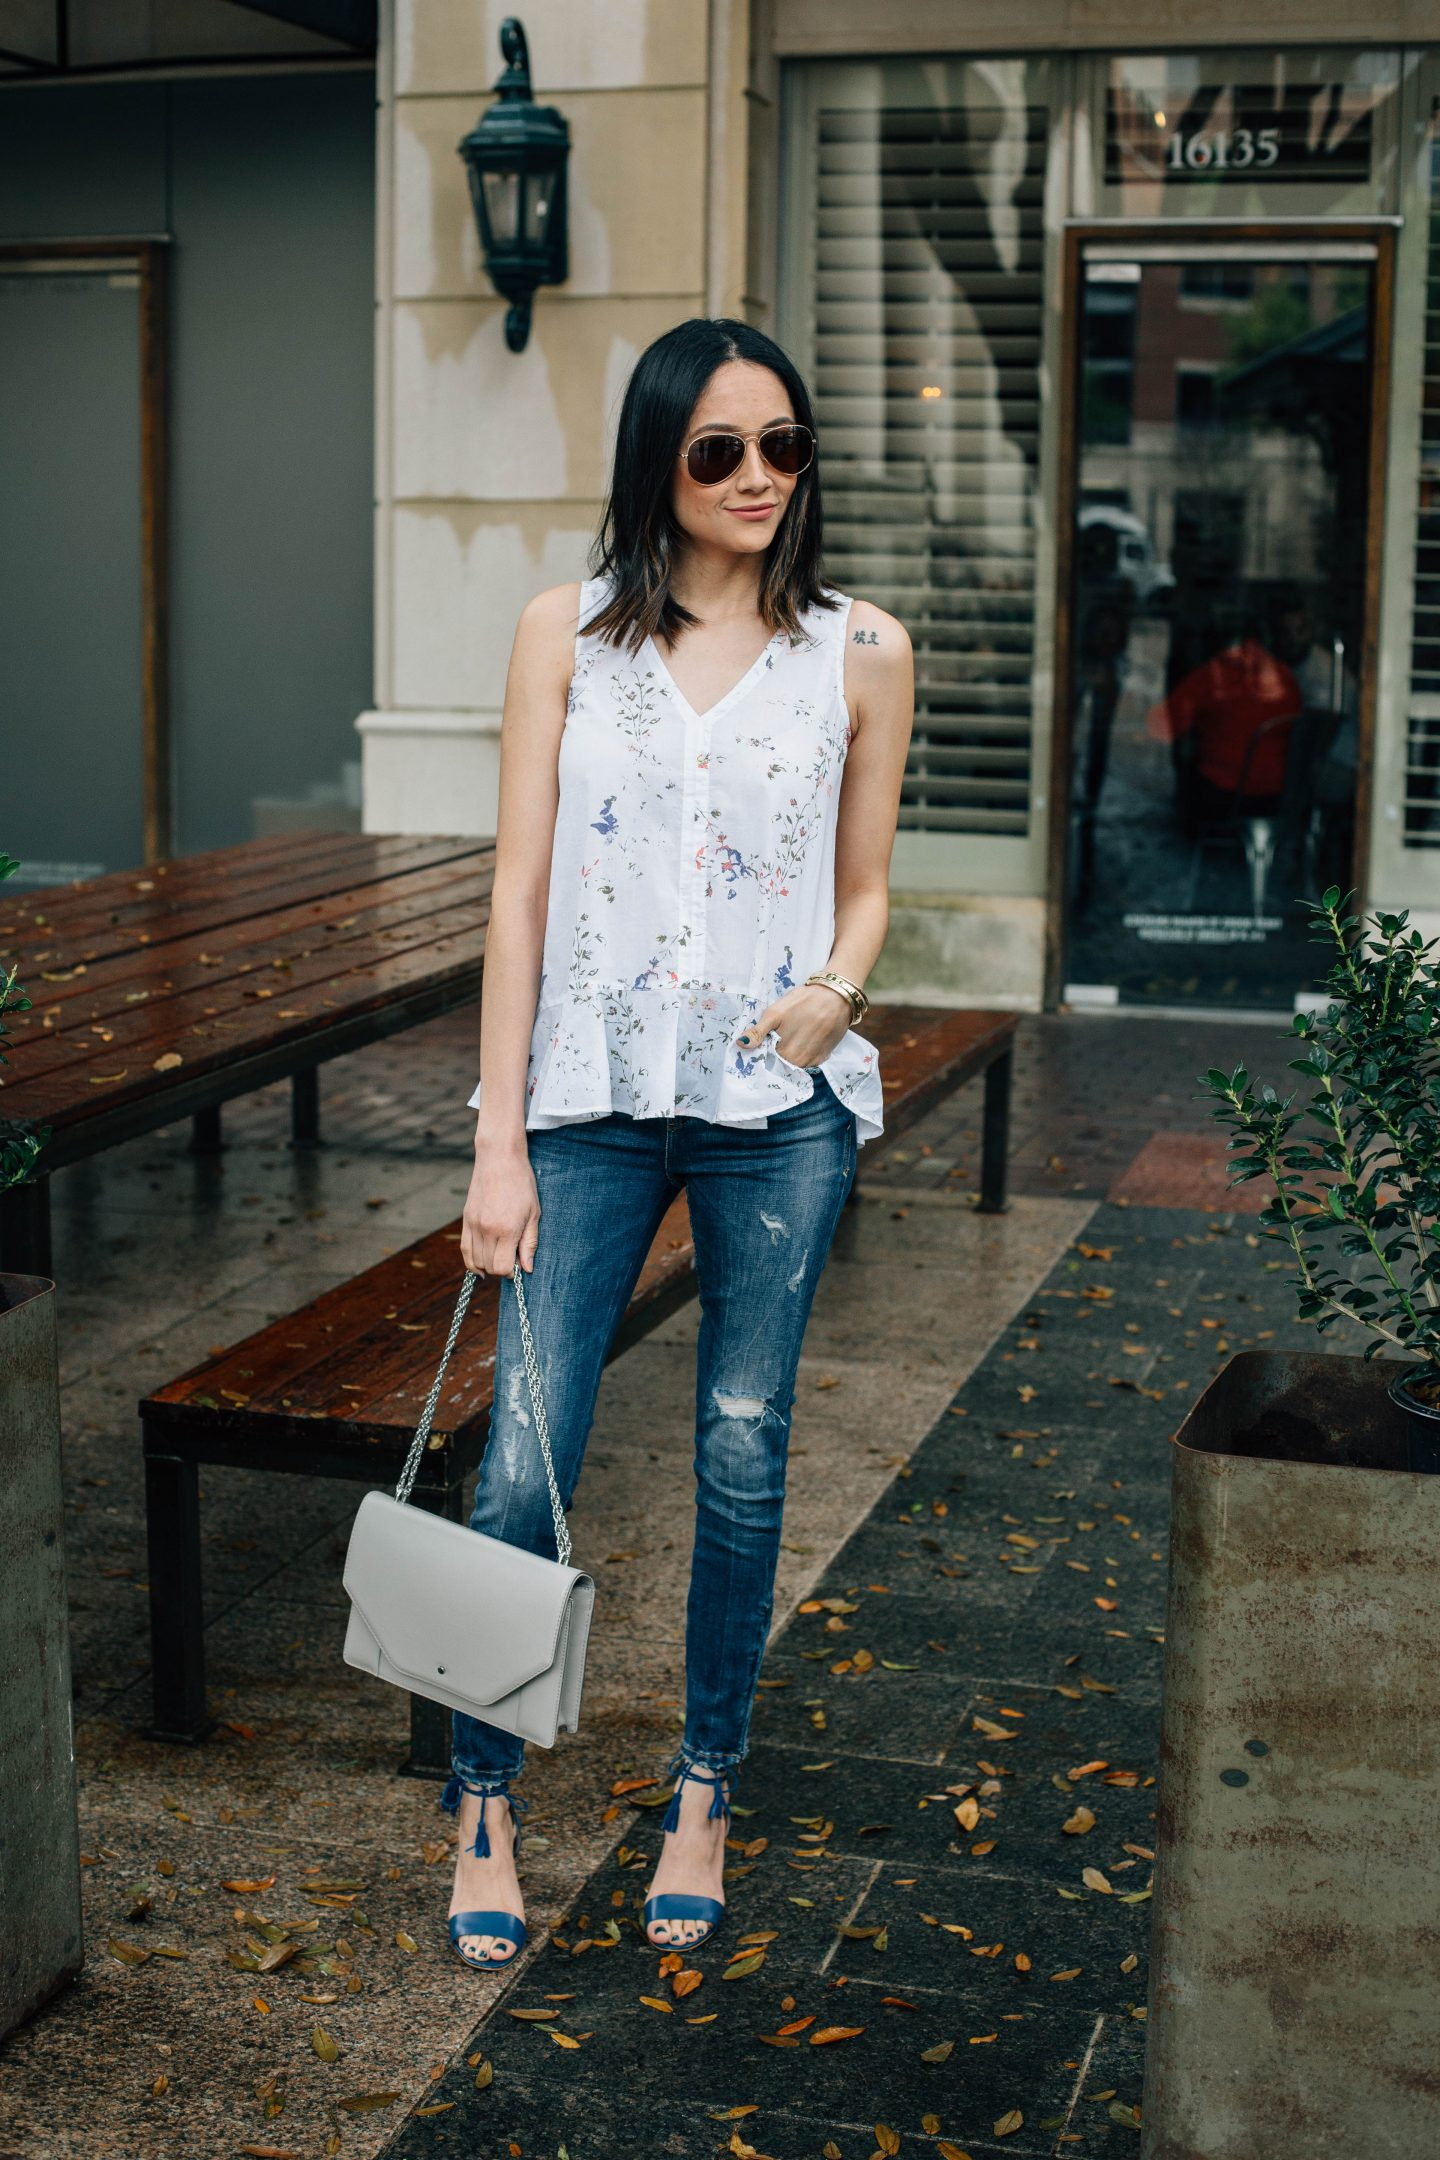 Daily Craving, Fashion Blogger, Floral Print Tops, Skinny Jeans, Lace Up Sandals